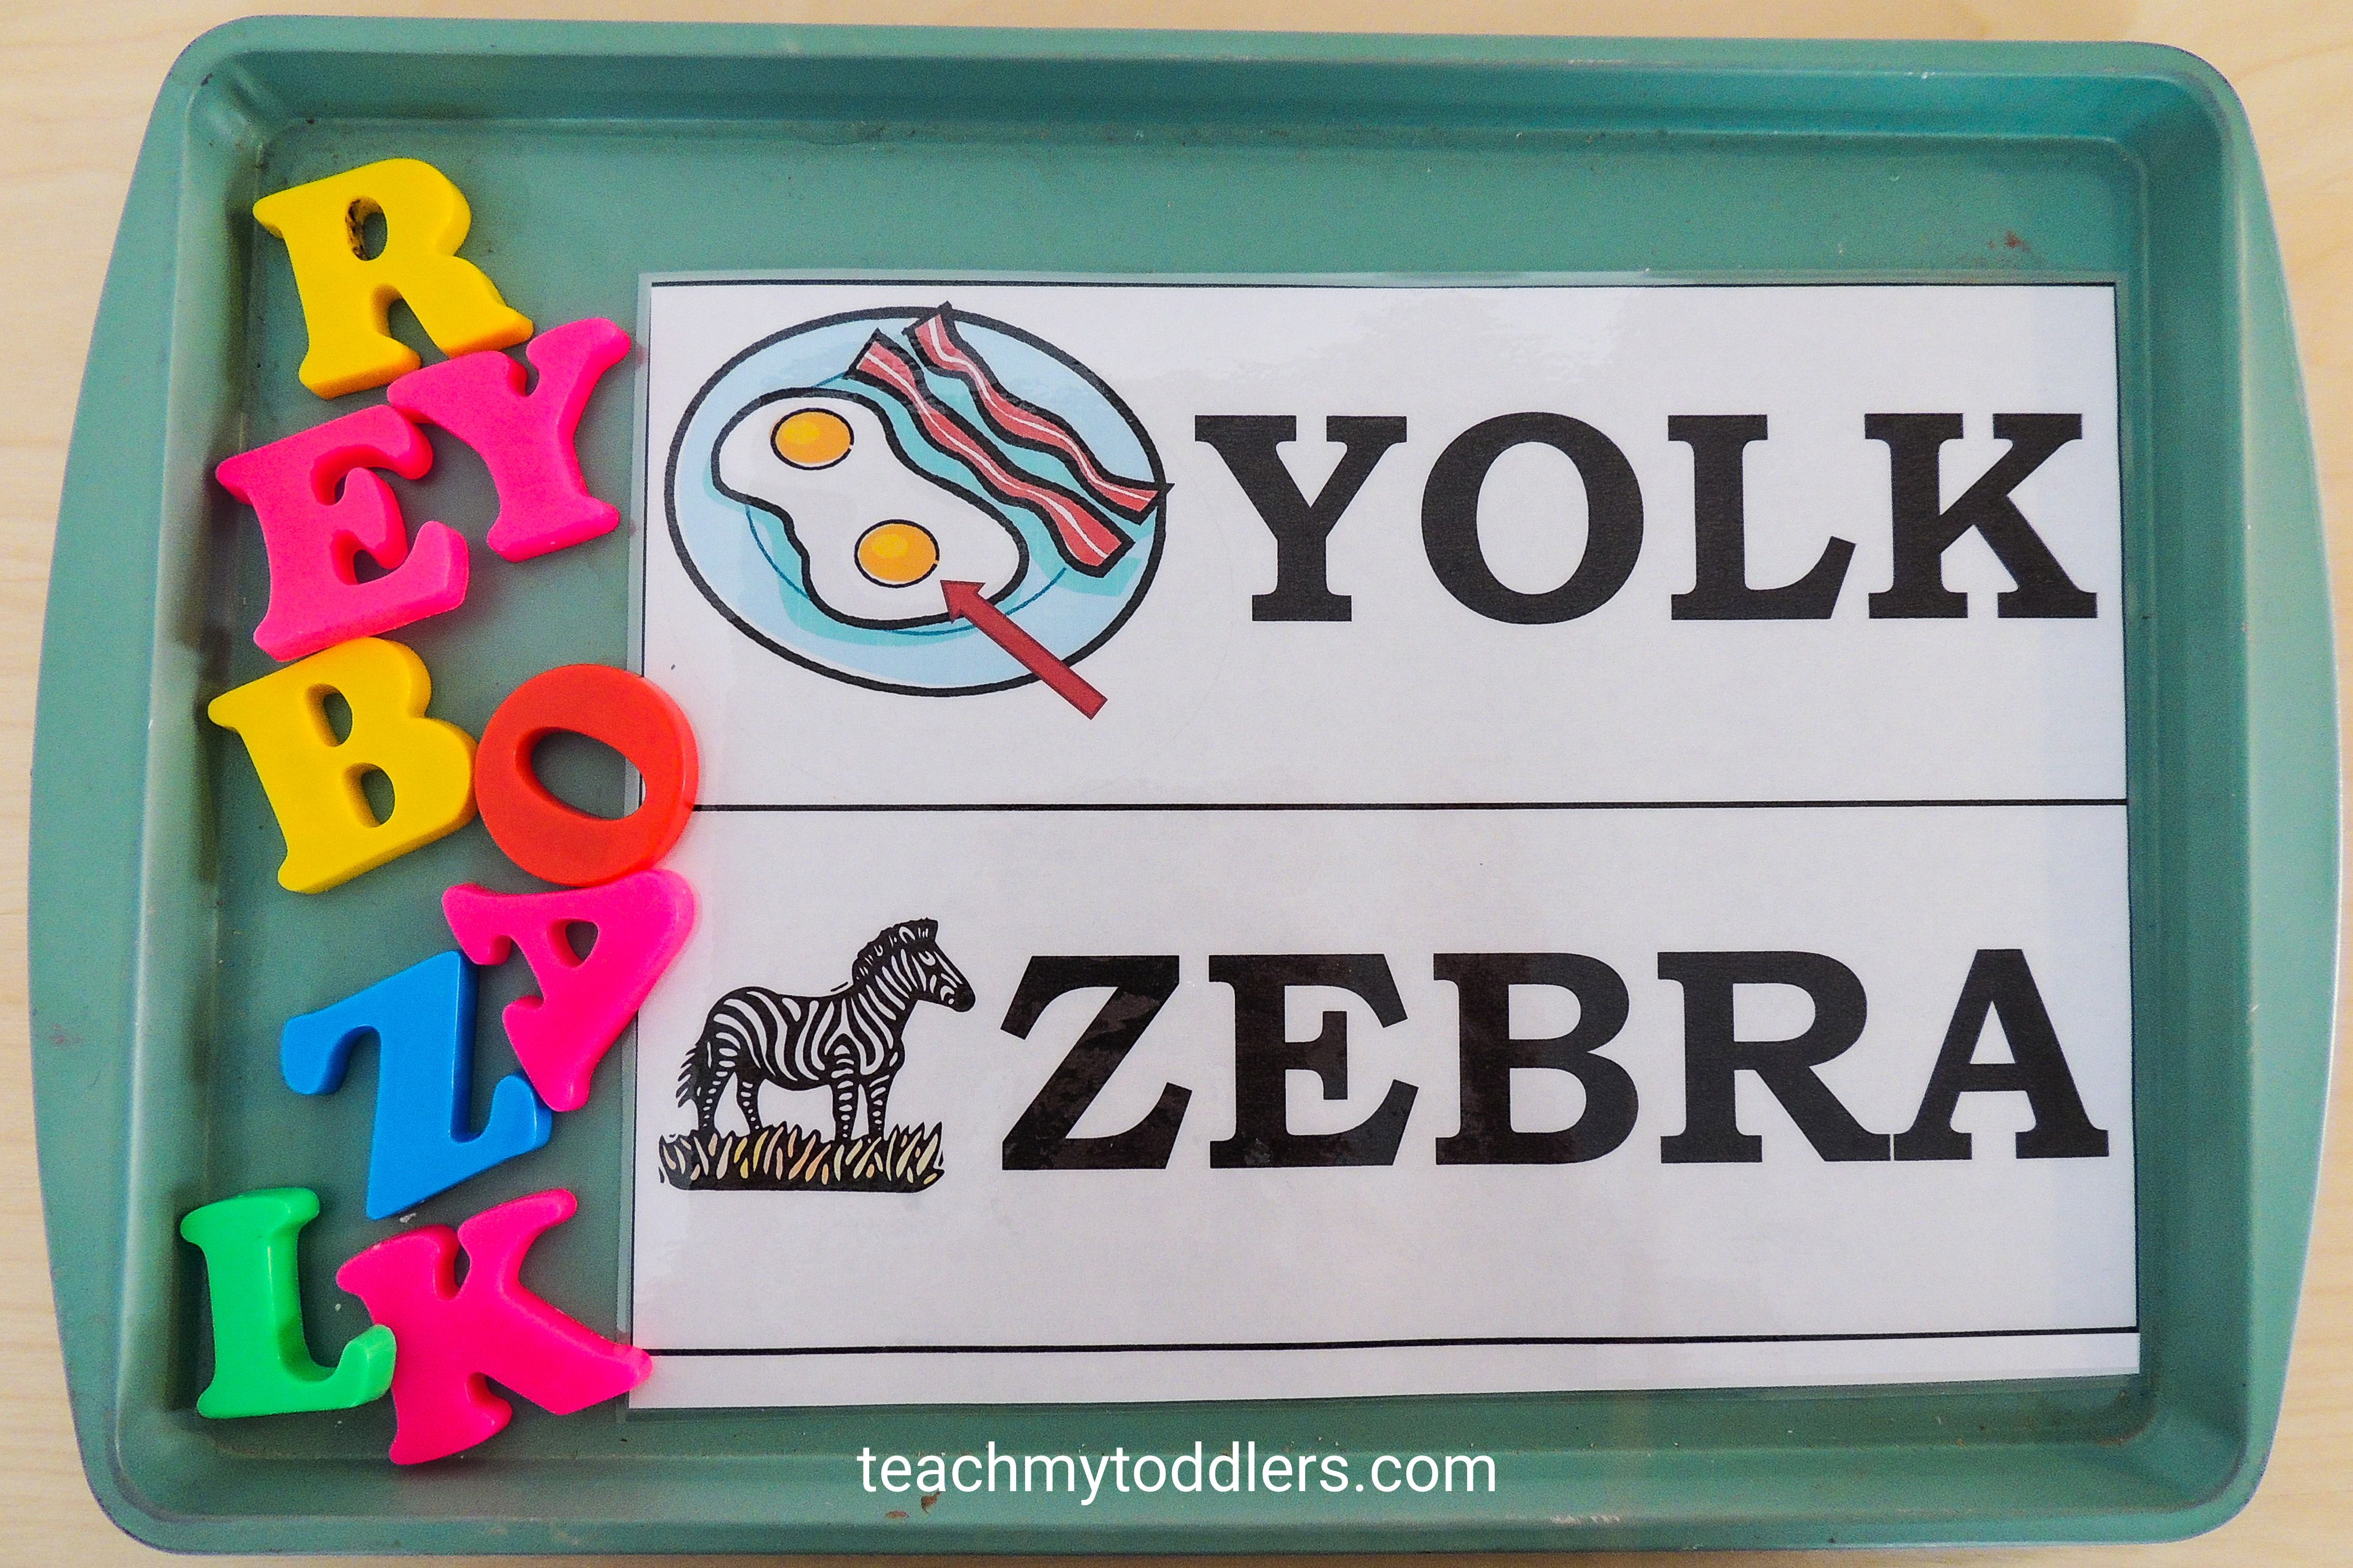 Discover how to use this magnetic match game to teach your toddlers letters